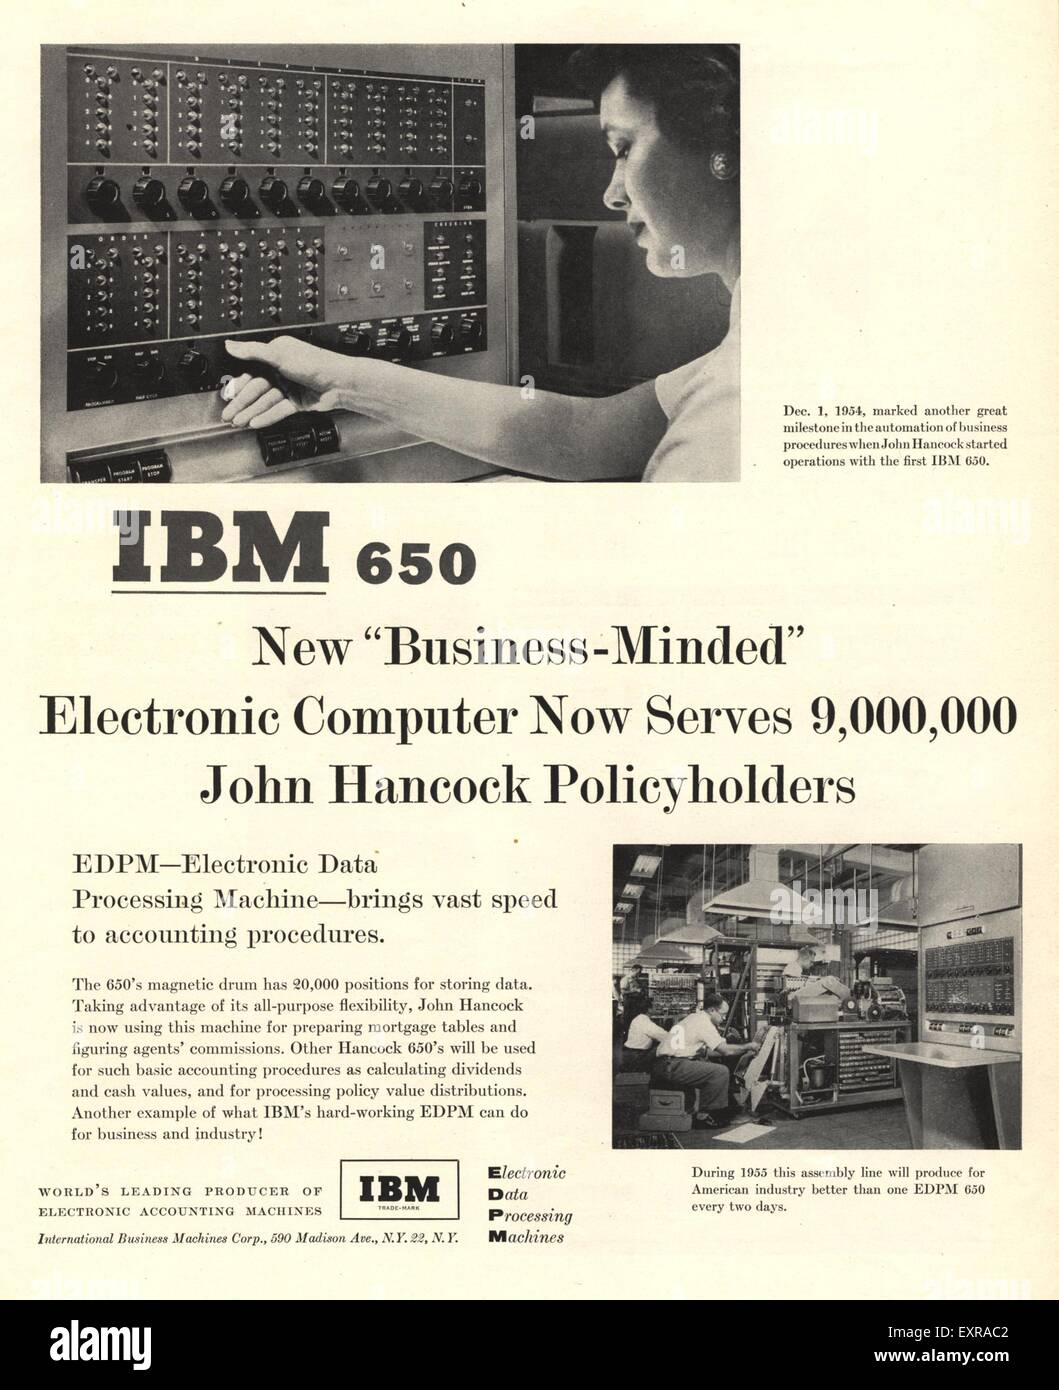 1950s USA IBM Magazine Advert - Stock Image